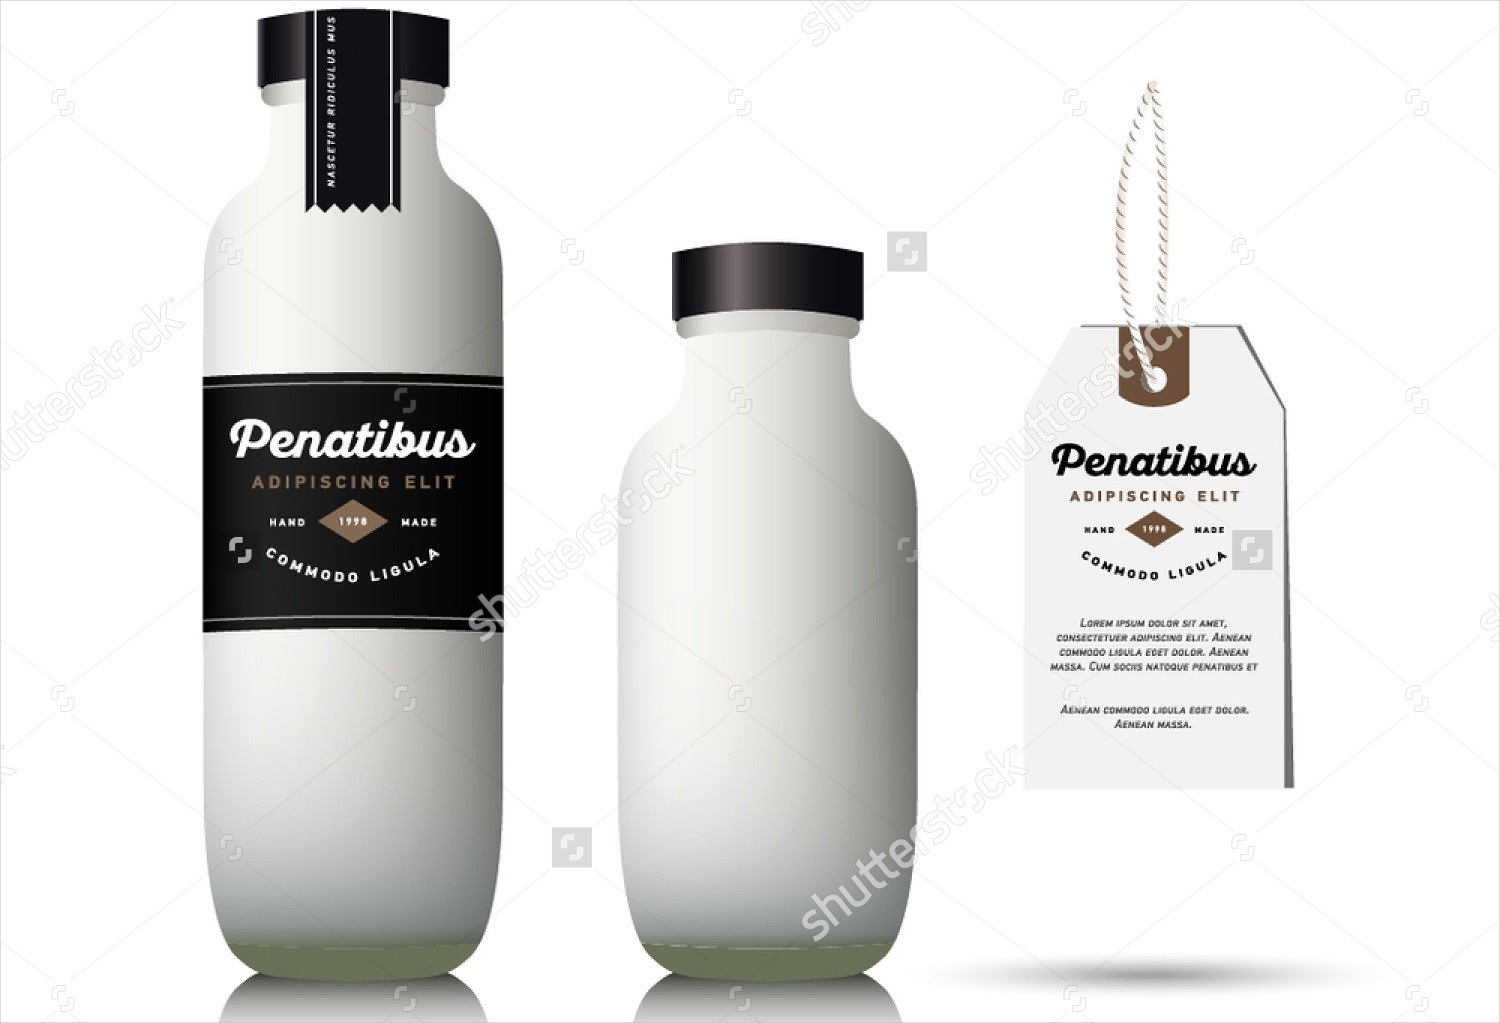 milk bottle packaging design